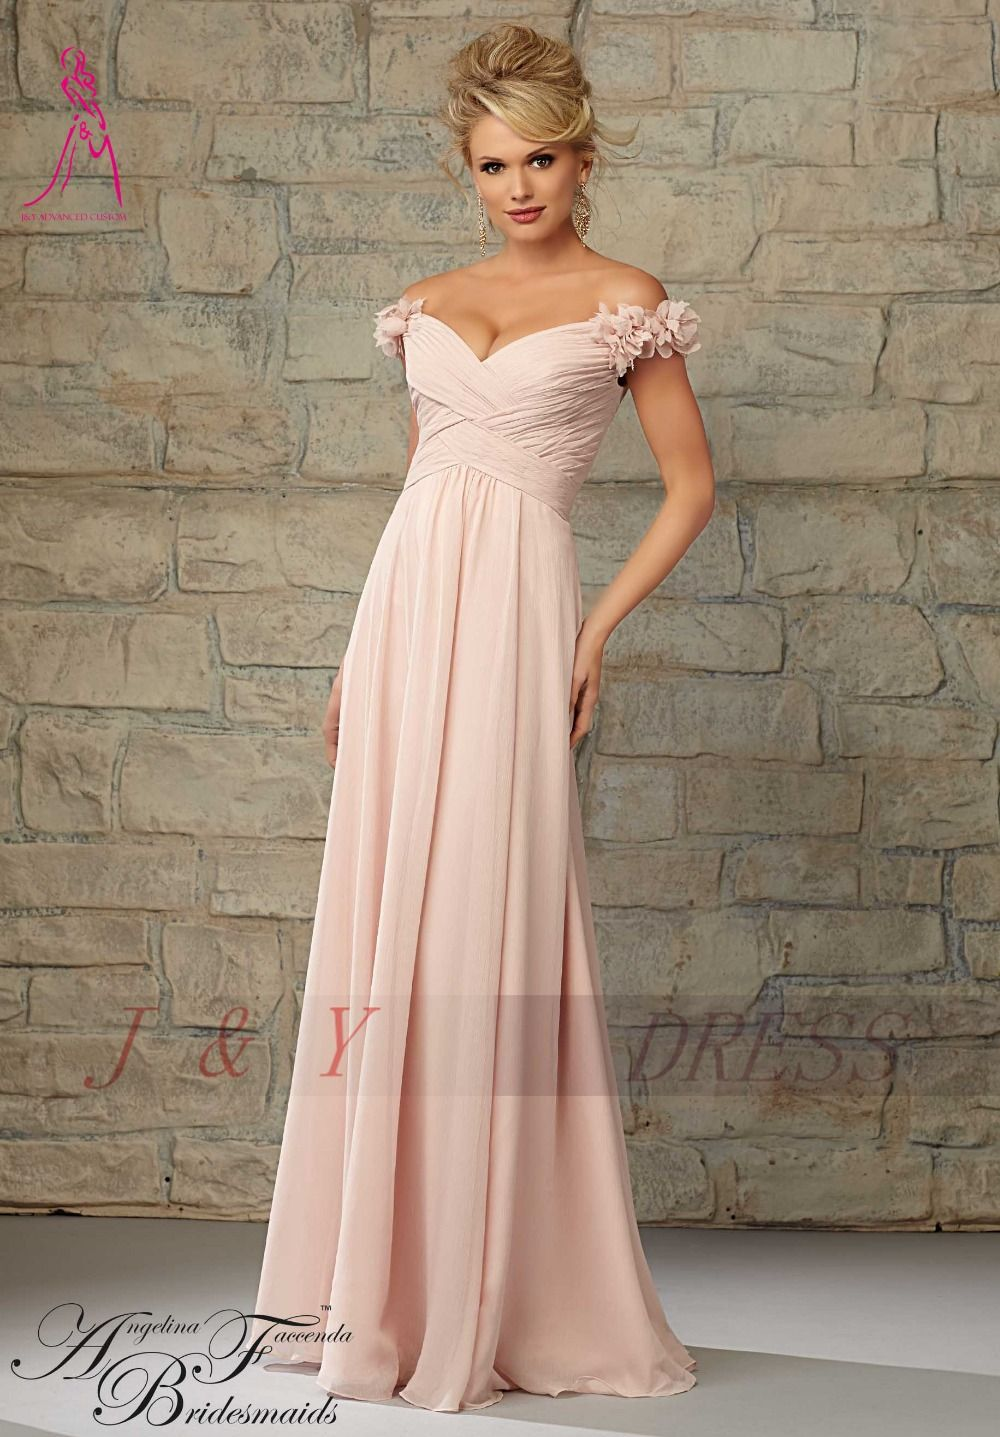 2015 new arrival pleat a line flowers long bridesmaid dresses 2015 new arrival pleat a line flowers long bridesmaid dresses sleeveless chiffon dresses wedding bridesmaid ombrellifo Gallery